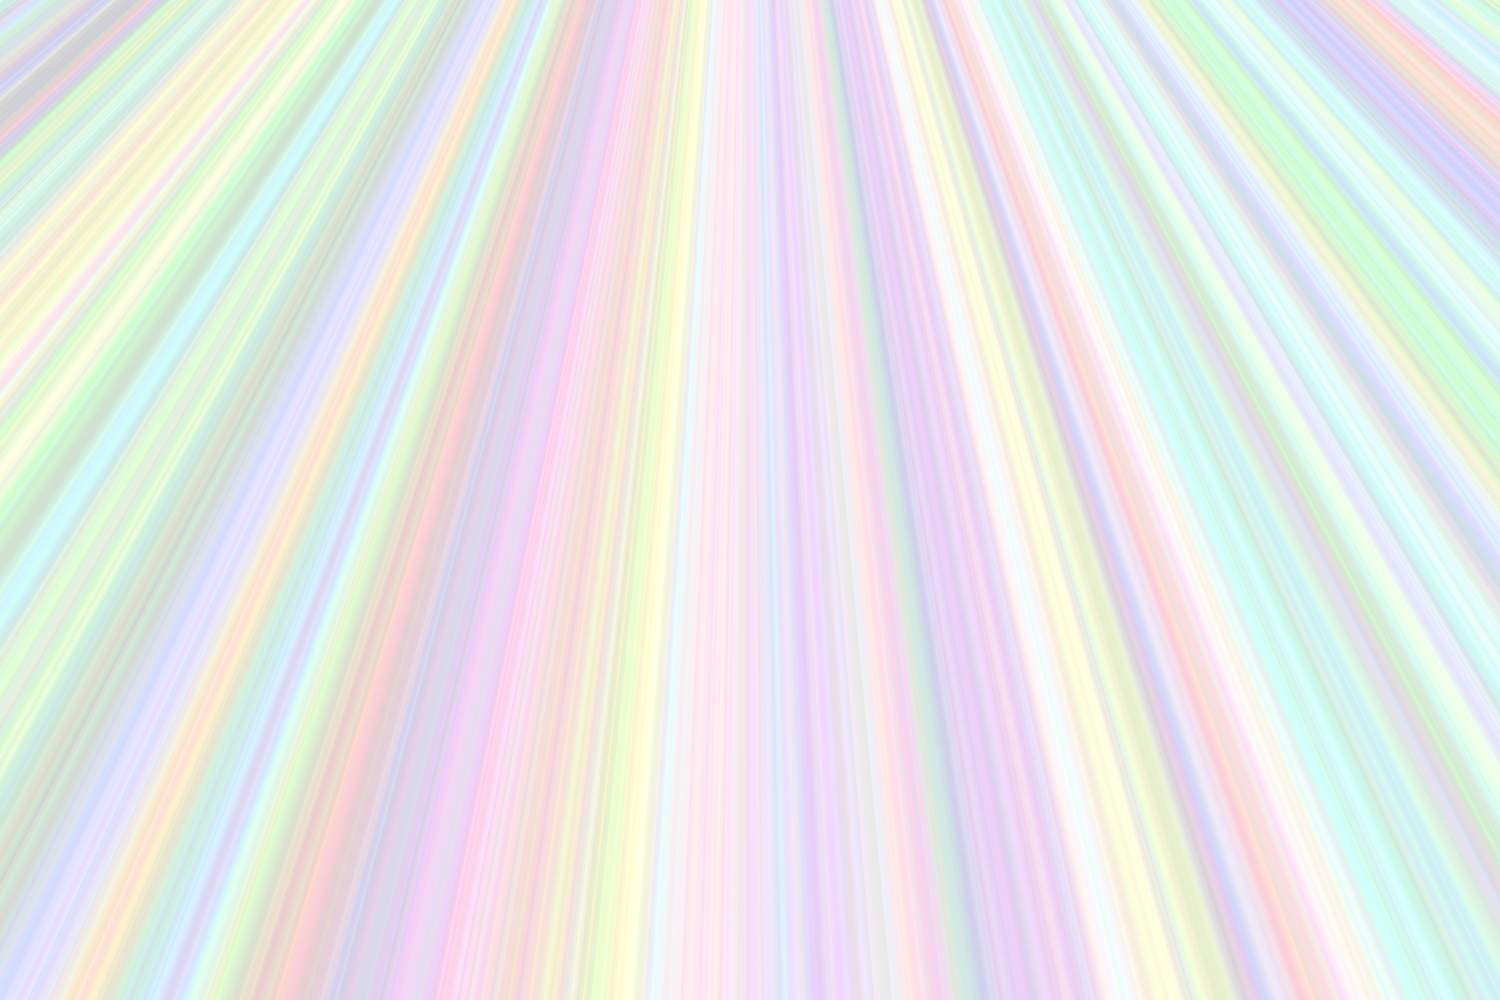 10 Color Backgrounds (AI, EPS, JPG 5000x5000) example image 7